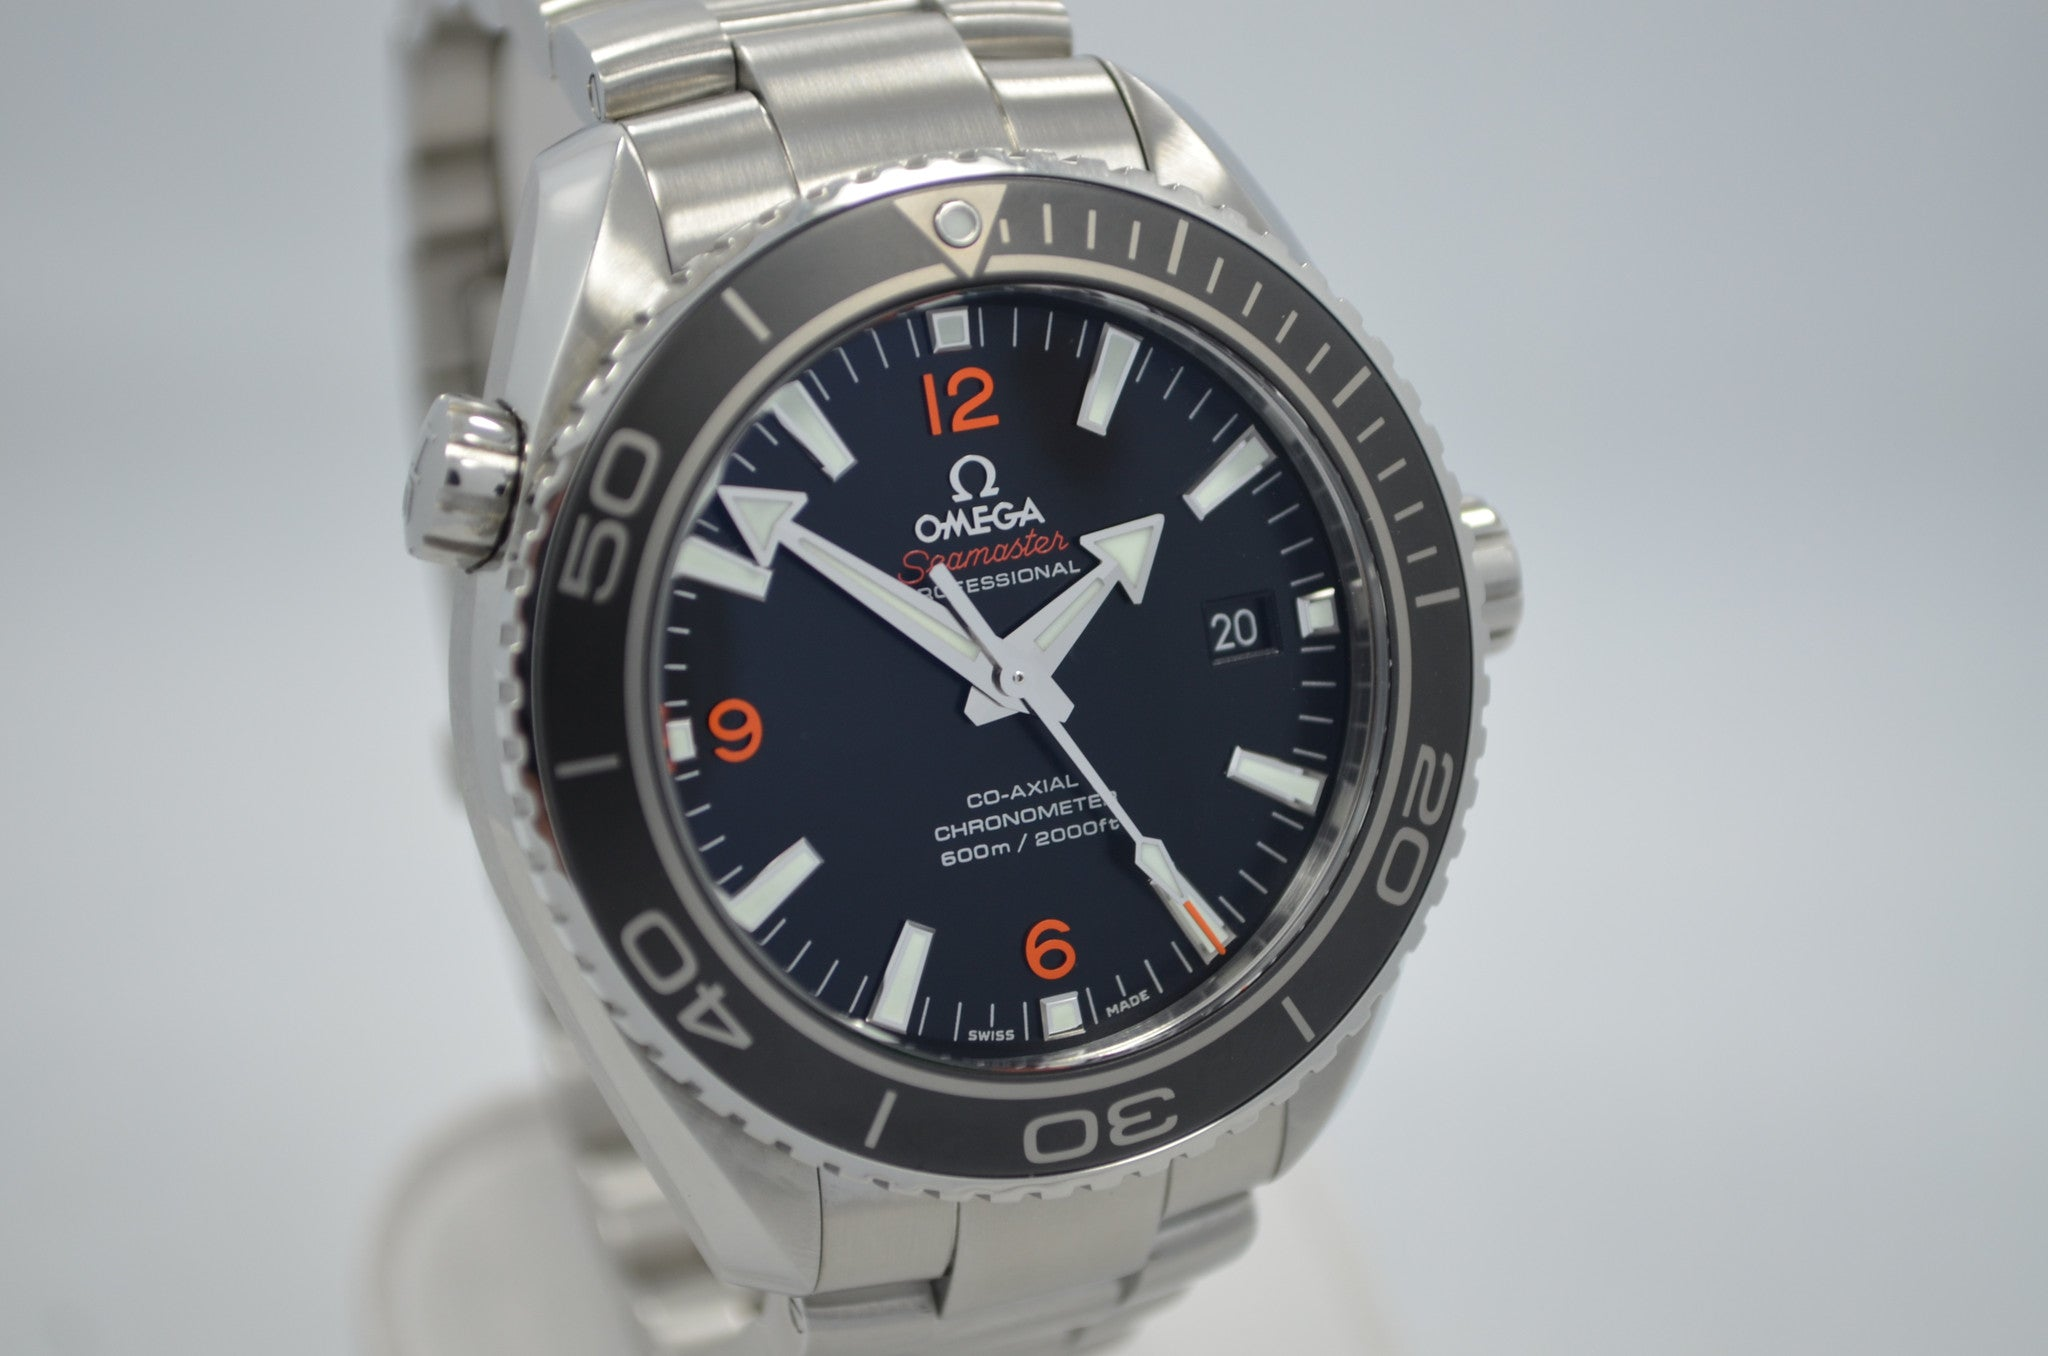 Omega 232.30.46.21.01.003 Seamaster Planet Ocean Professional 600M Master Co-Axial Watch - Hashtag Watch Company